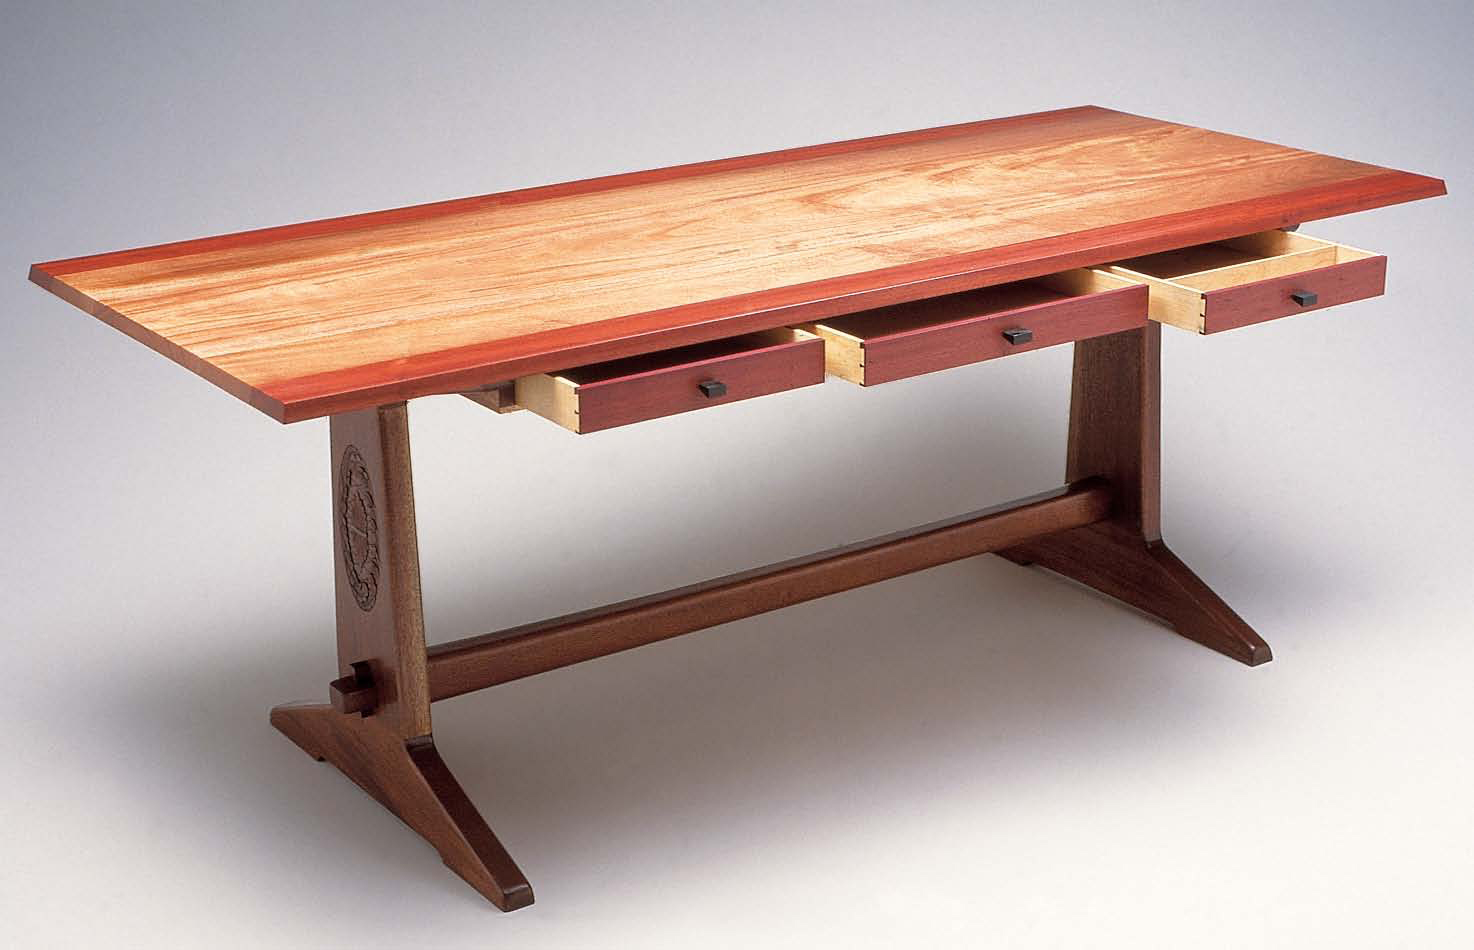 wooden design furniture. Wood Furniture 1. Design And Build A Diy Trestle Table XPFPWUA Wooden